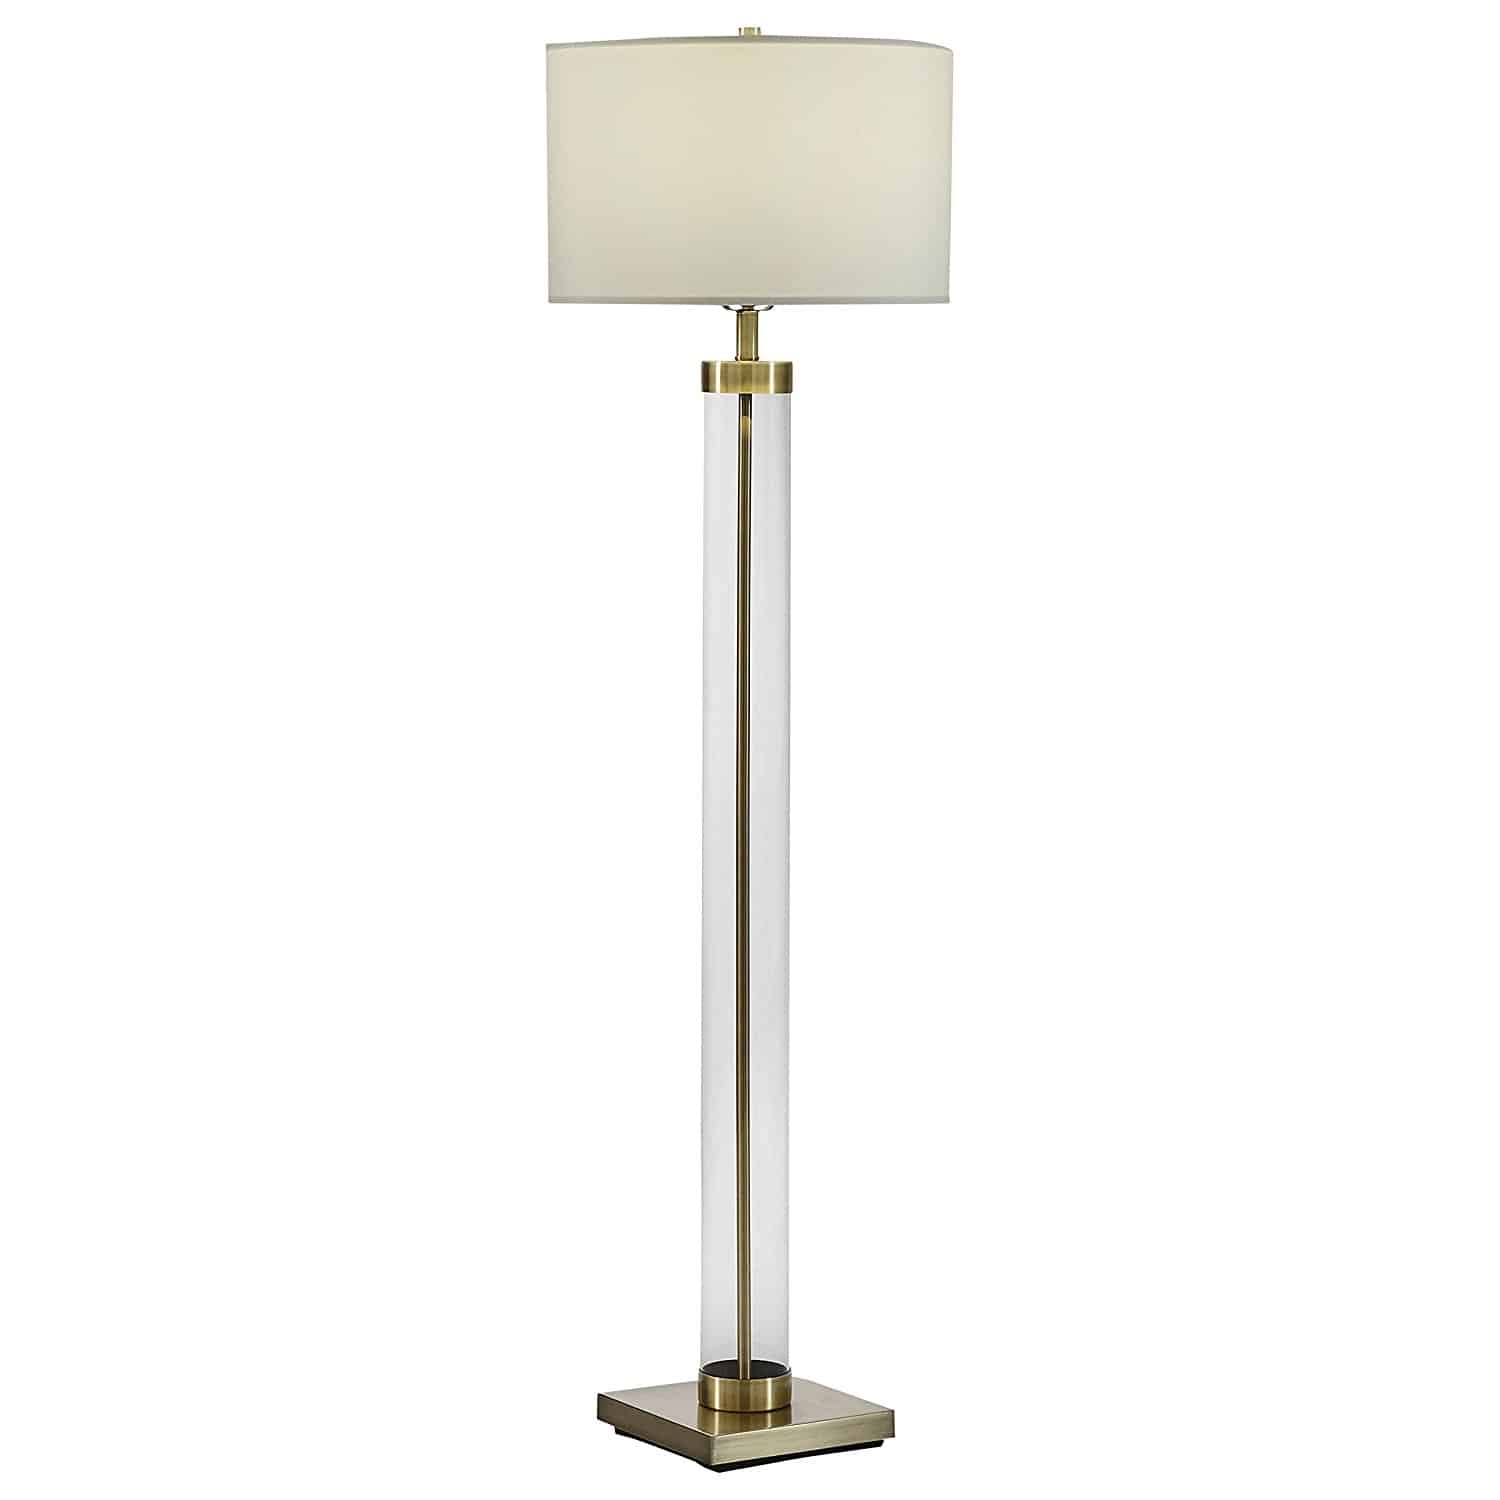 Stone & Beam Glass Column Brass Floor Lamp